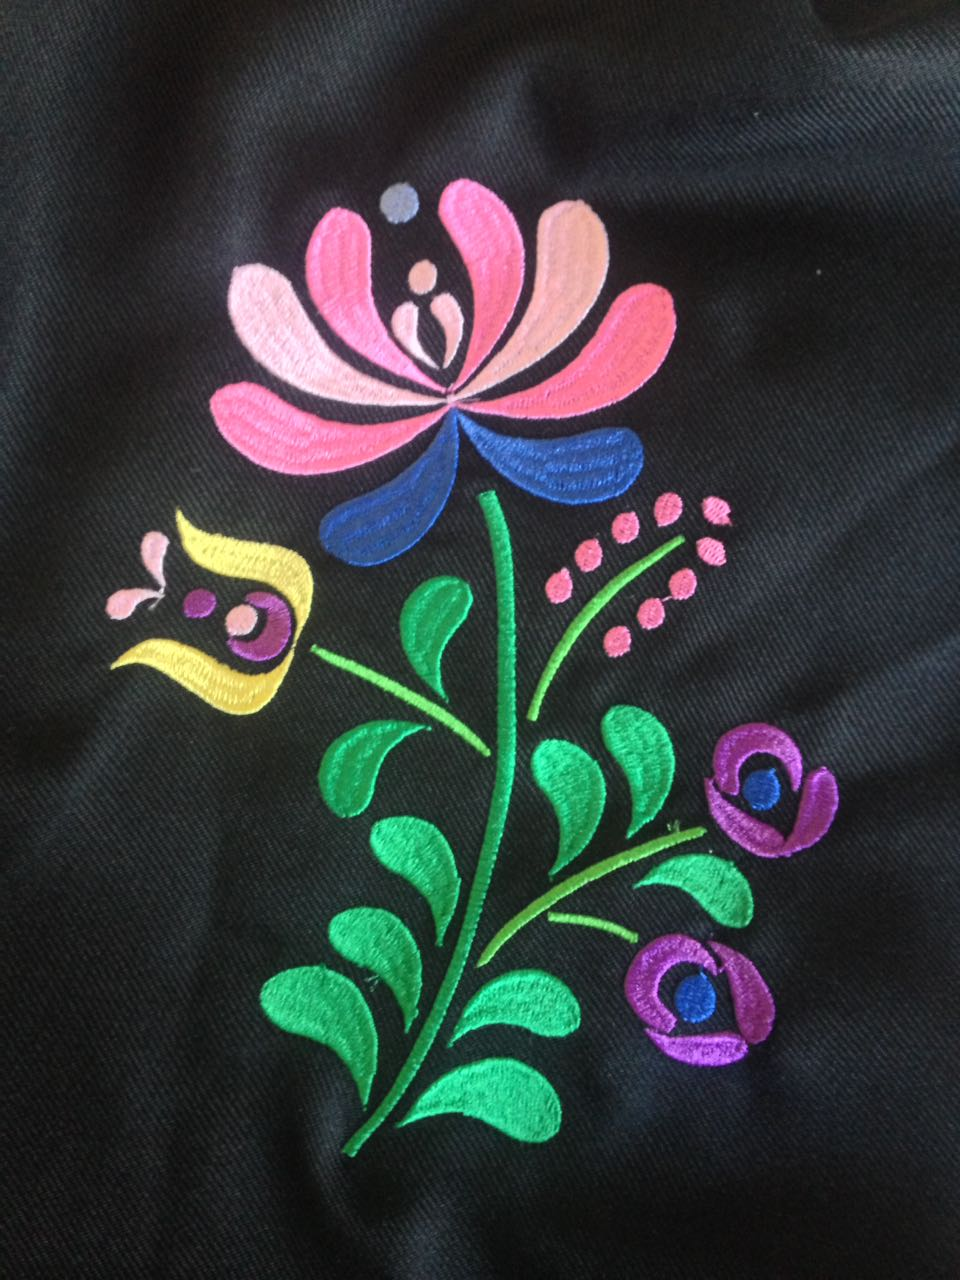 Flower JAZ embroidery design, 100 x 72 mm embroidery matrix, different sizes embroidery design Embroidery matrix, Mexican design example image 3